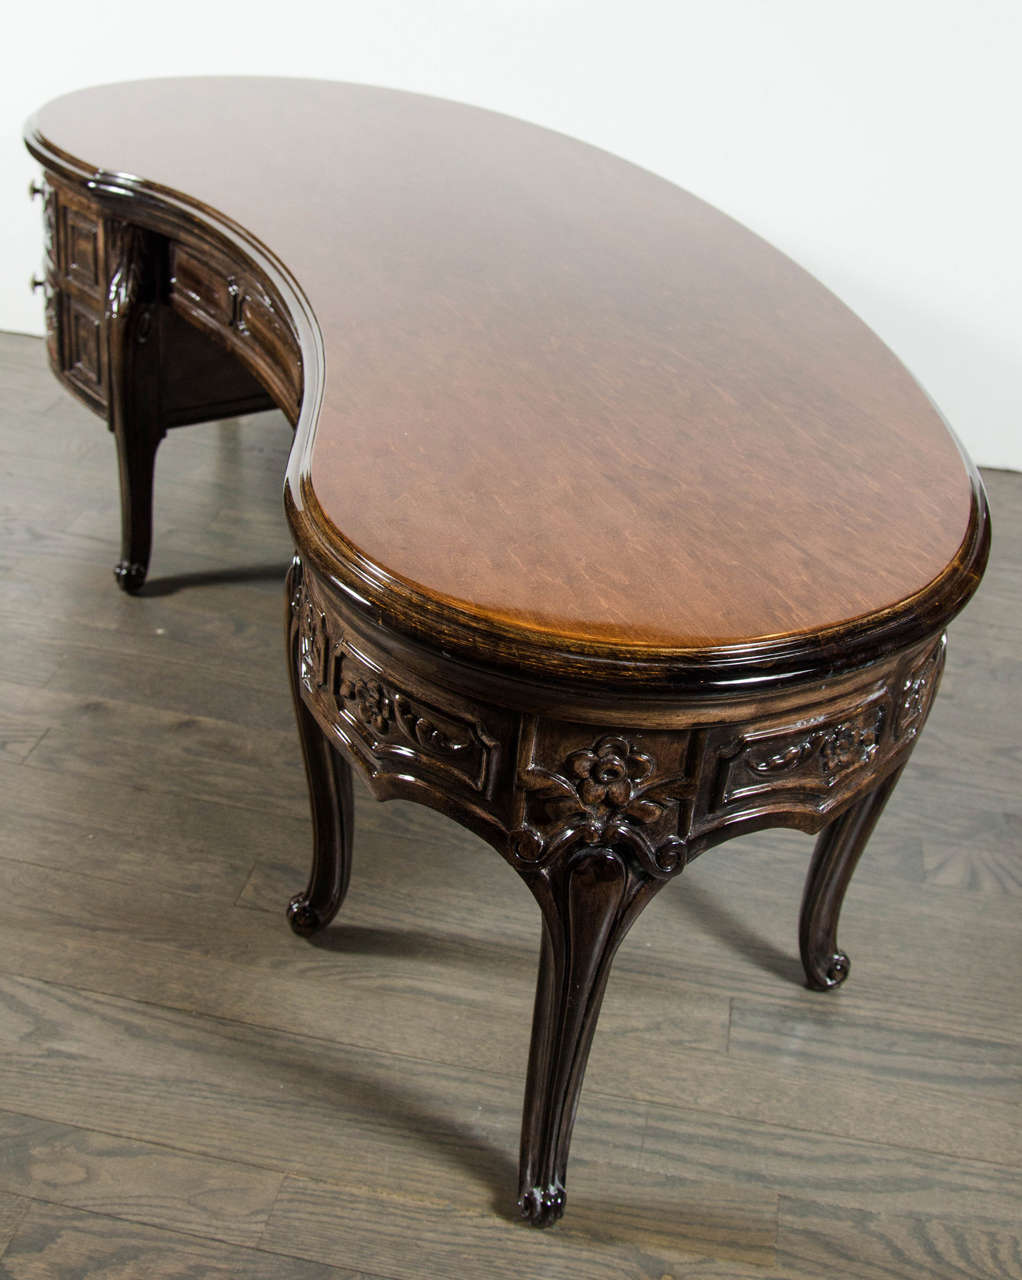 Elegant 1940s Hollywood Kidney Shaped Cocktail Table with Hand-Carved Detailing In Excellent Condition For Sale In New York, NY